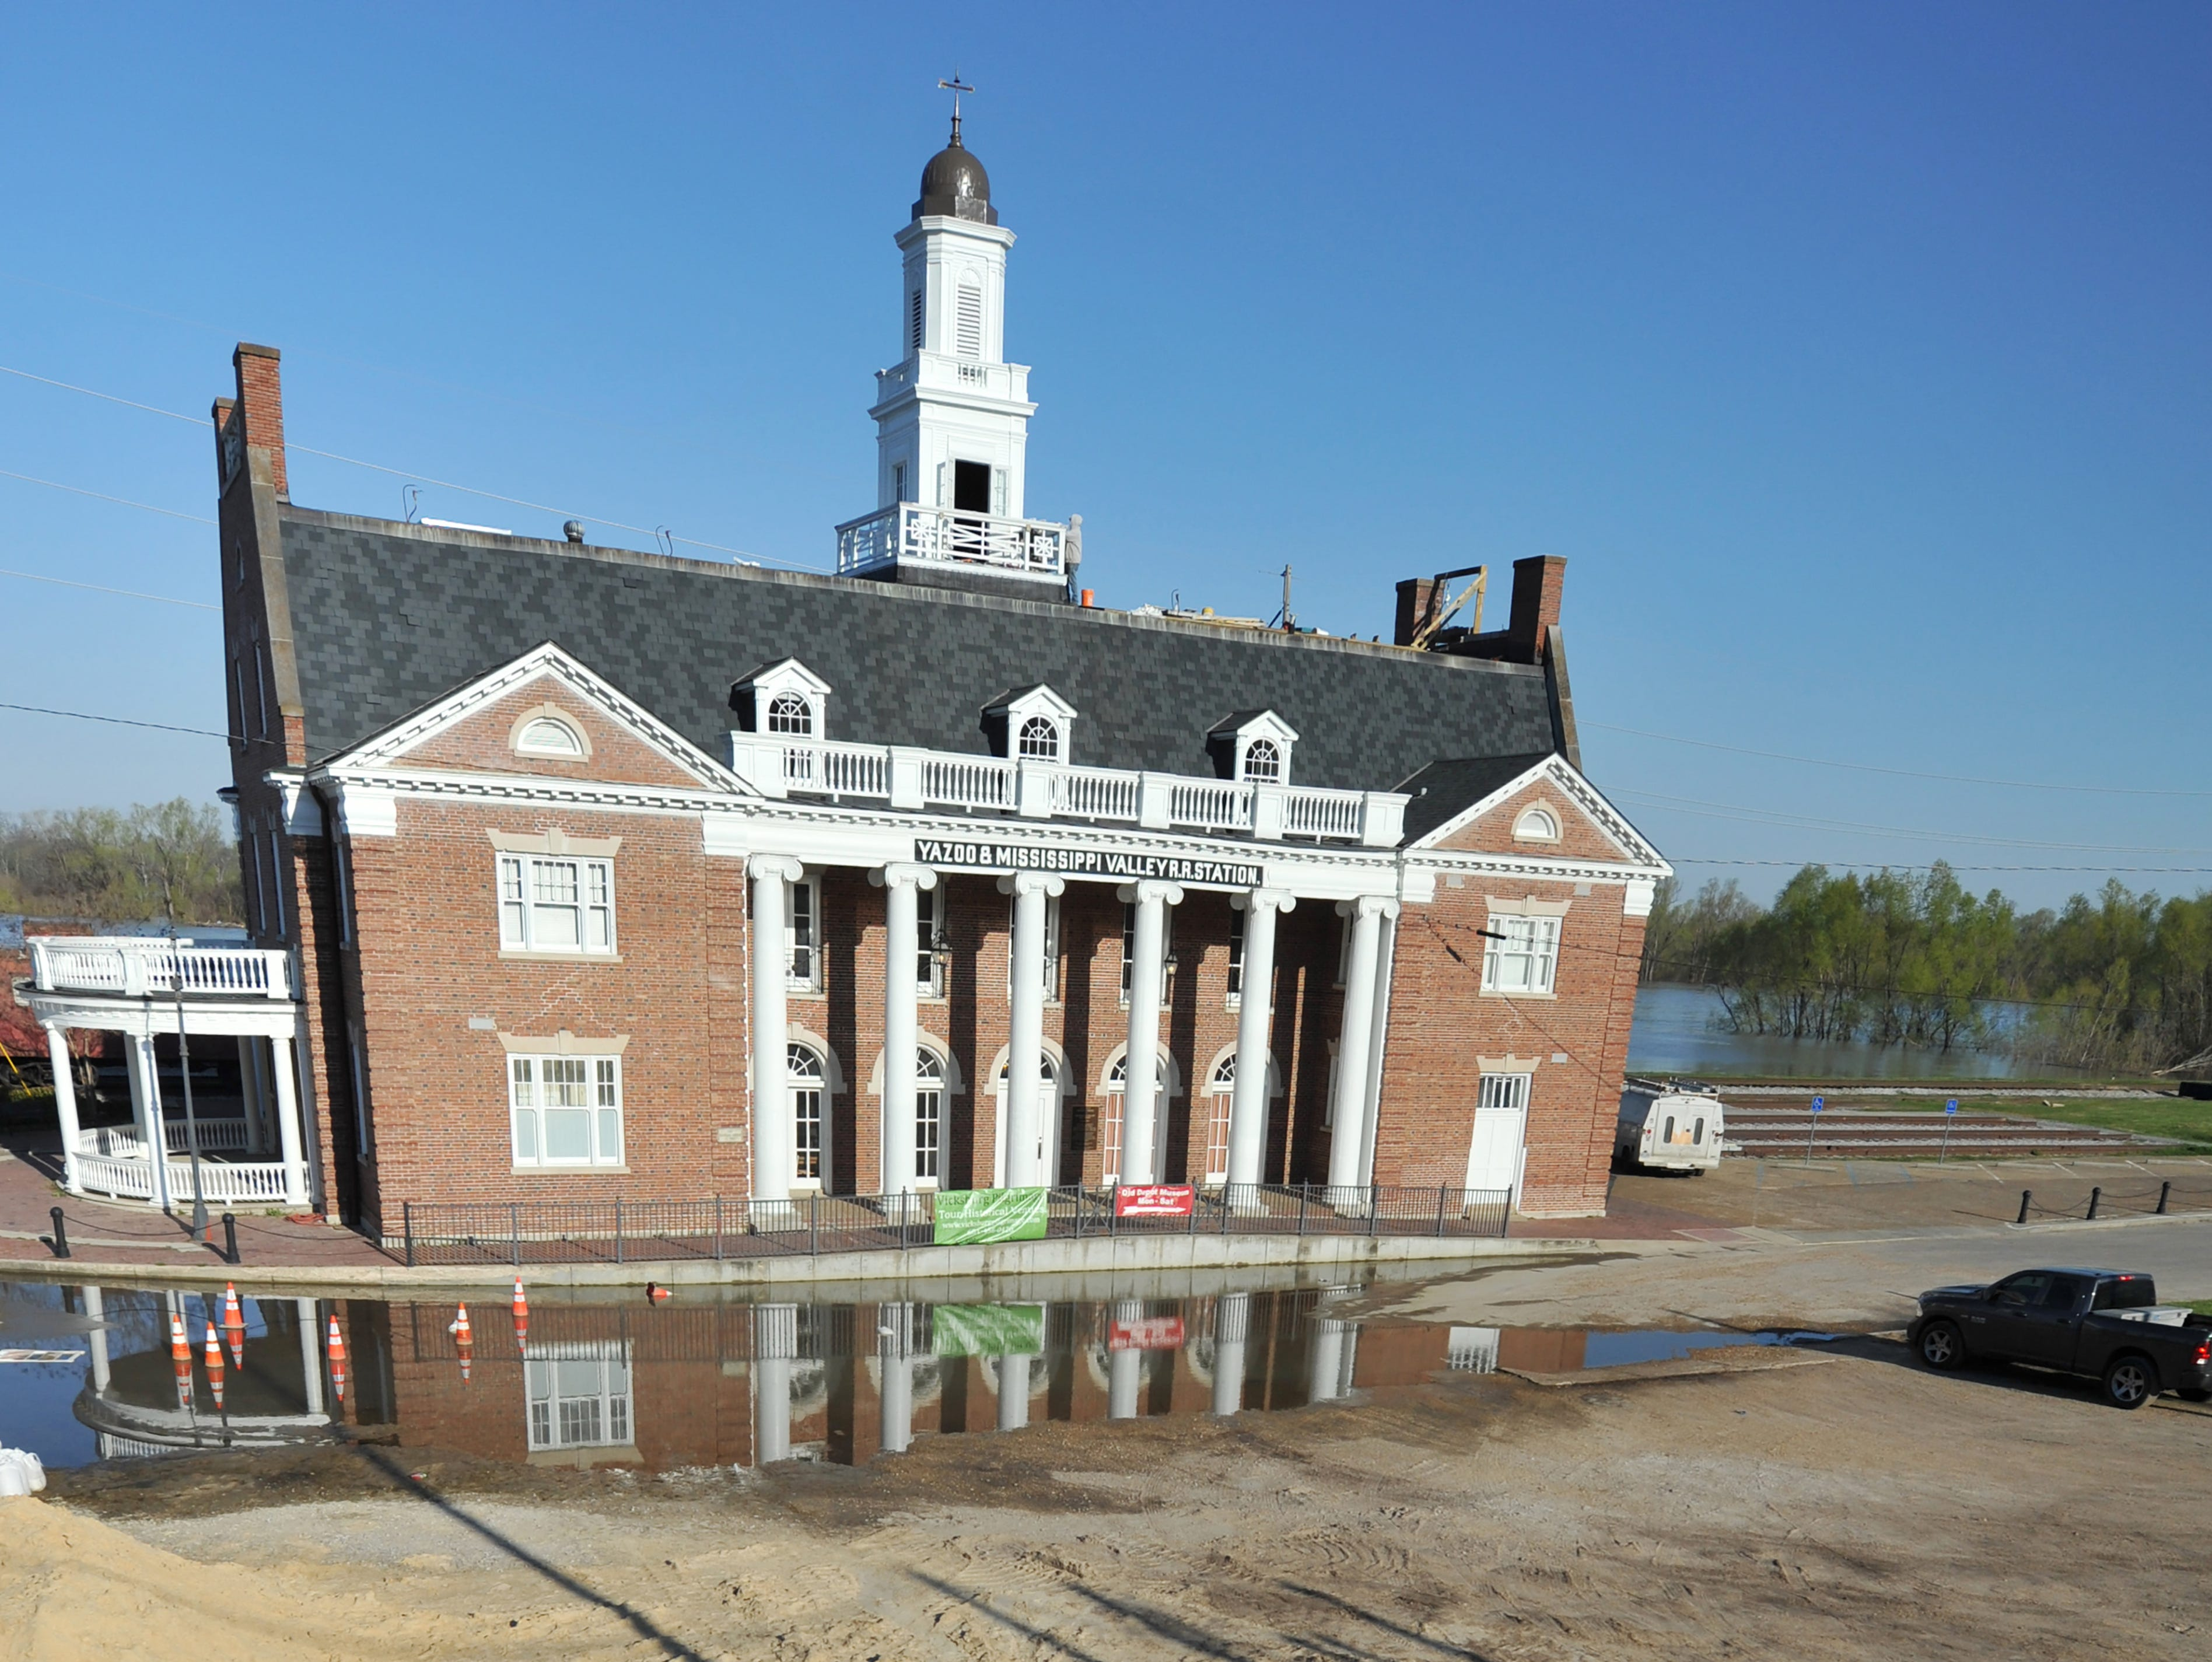 The Old Depot Museum in Vicksburg remains safe from the floodwaters of the Yazoo River, but sandbags are filled and ready if needed anywhere in the city. In 2011 flood, the museum got over five feet of water inside.